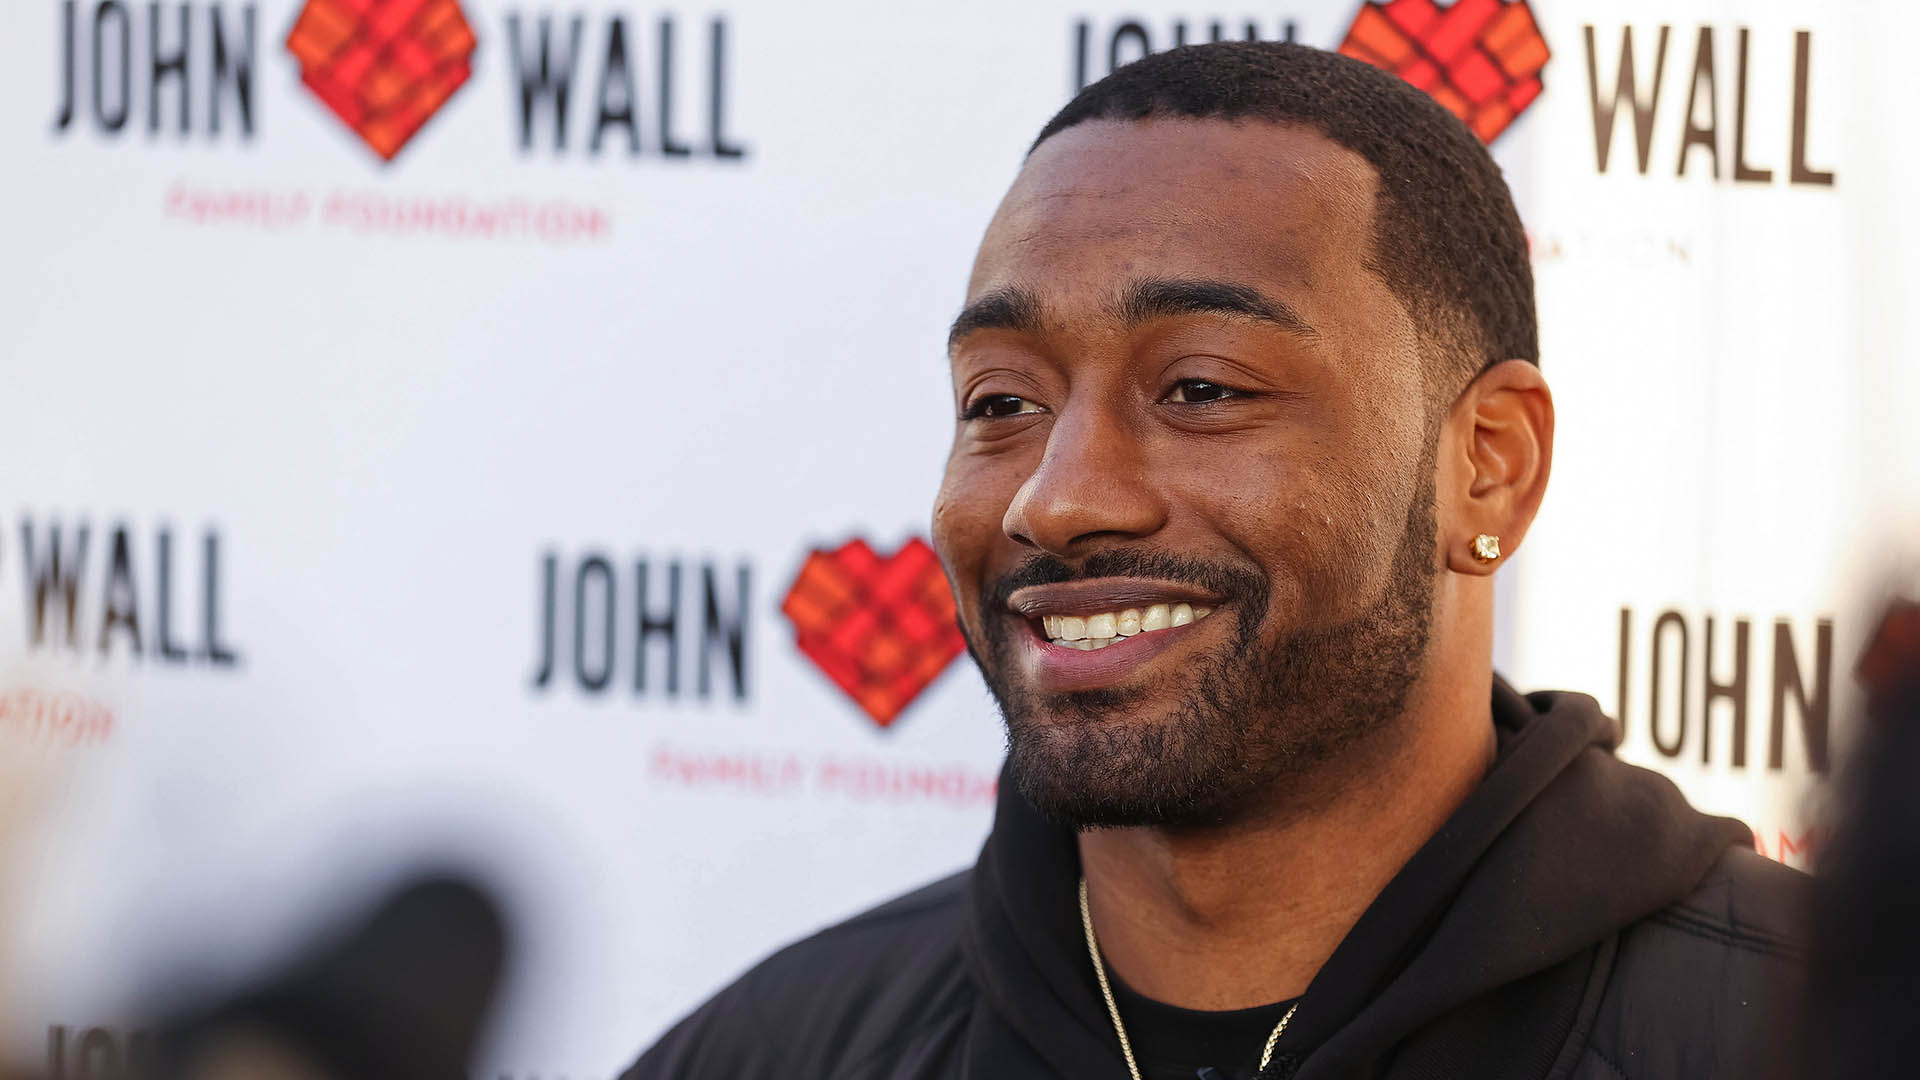 Media Week roundup: John Wall is 'ready to go'